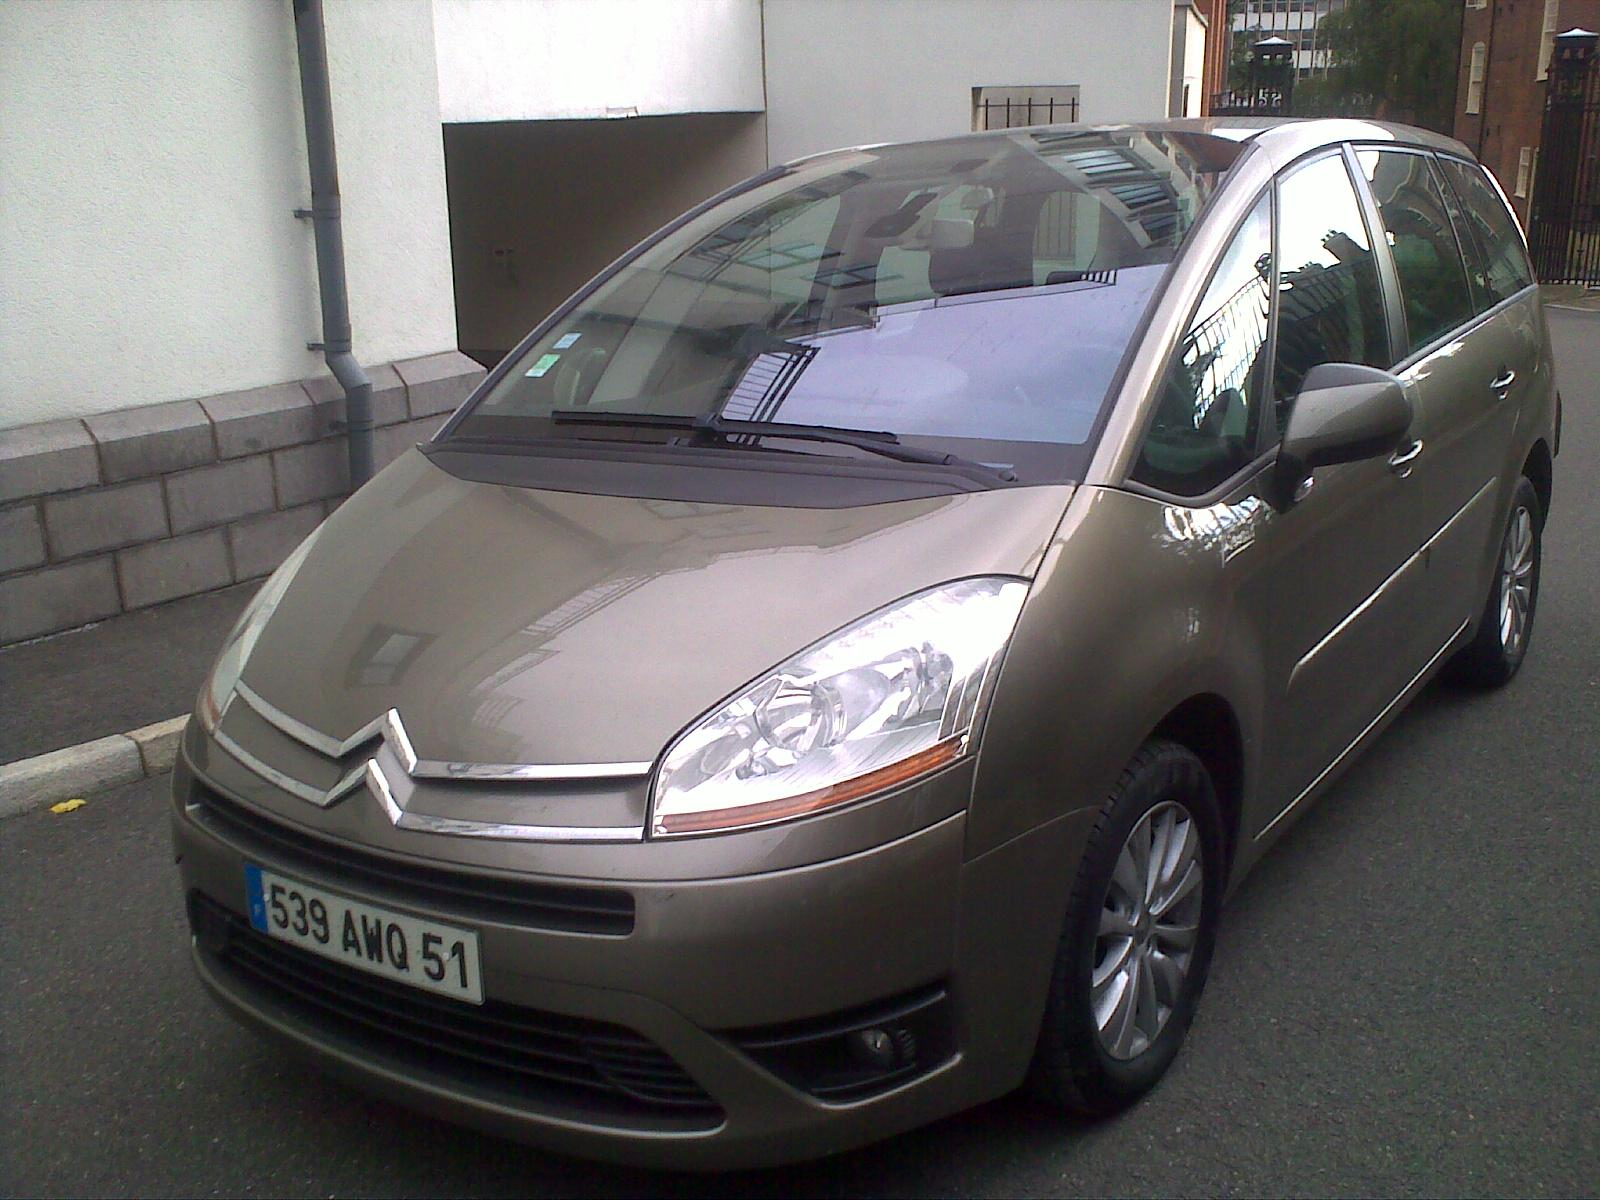 CITROEN C4 GRAND PICASSO 2.0 HDI 136 7 SEATS